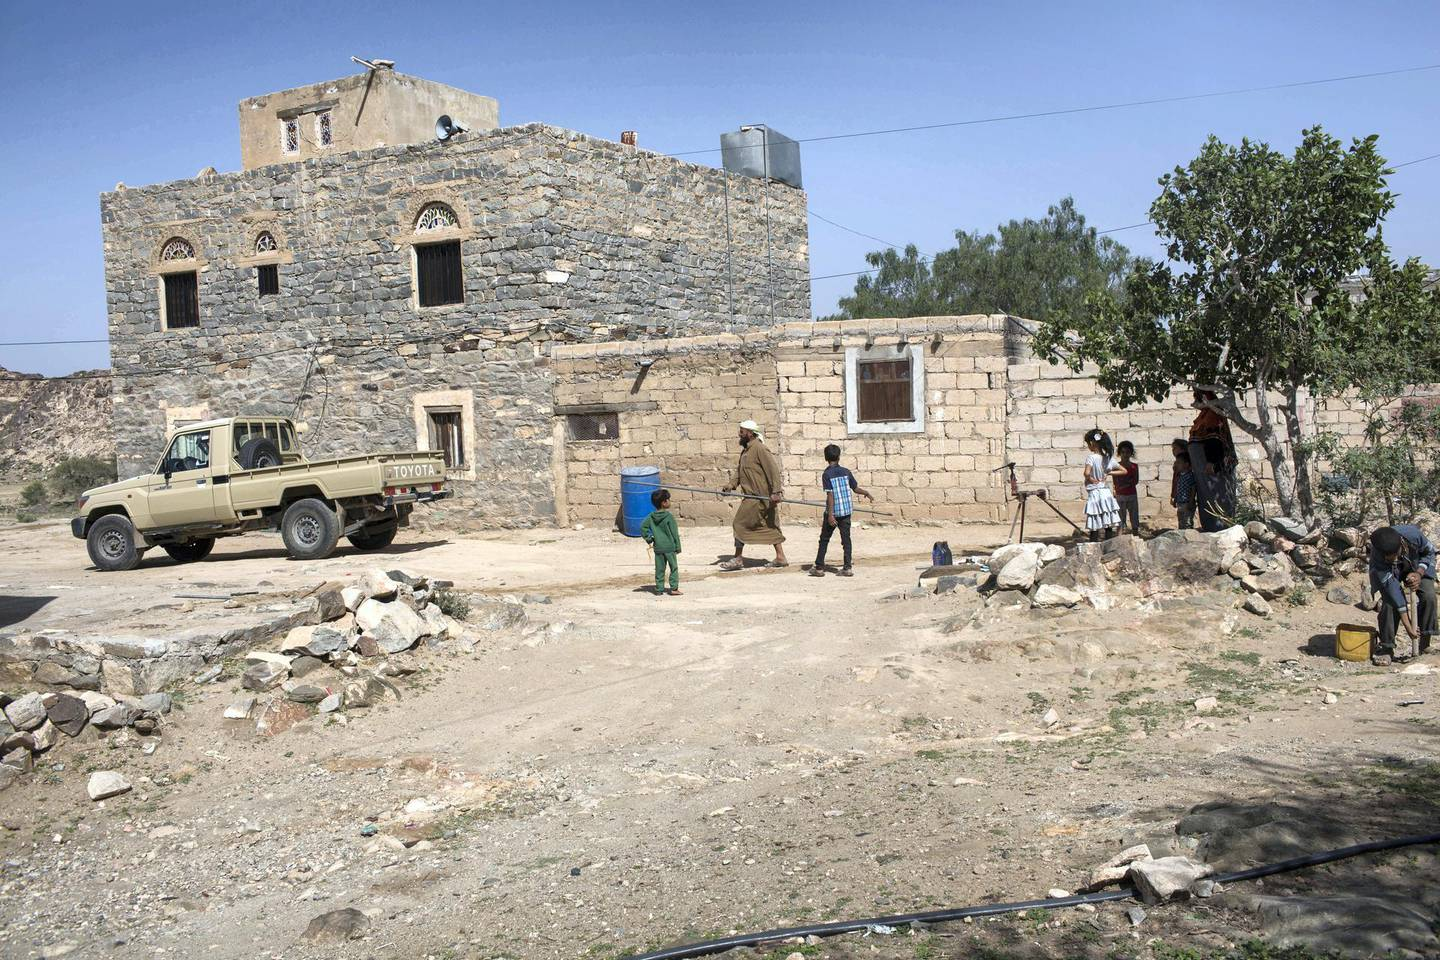 The house of Mohamed Abu Rayouf , a members of Yemeni resistance forces of Abu Jabr brigade takes islocated near a front line position in Zi Naem town of Al-Bayda governorate,  May 10, 2018.  Photo/ Asmaa Waguih